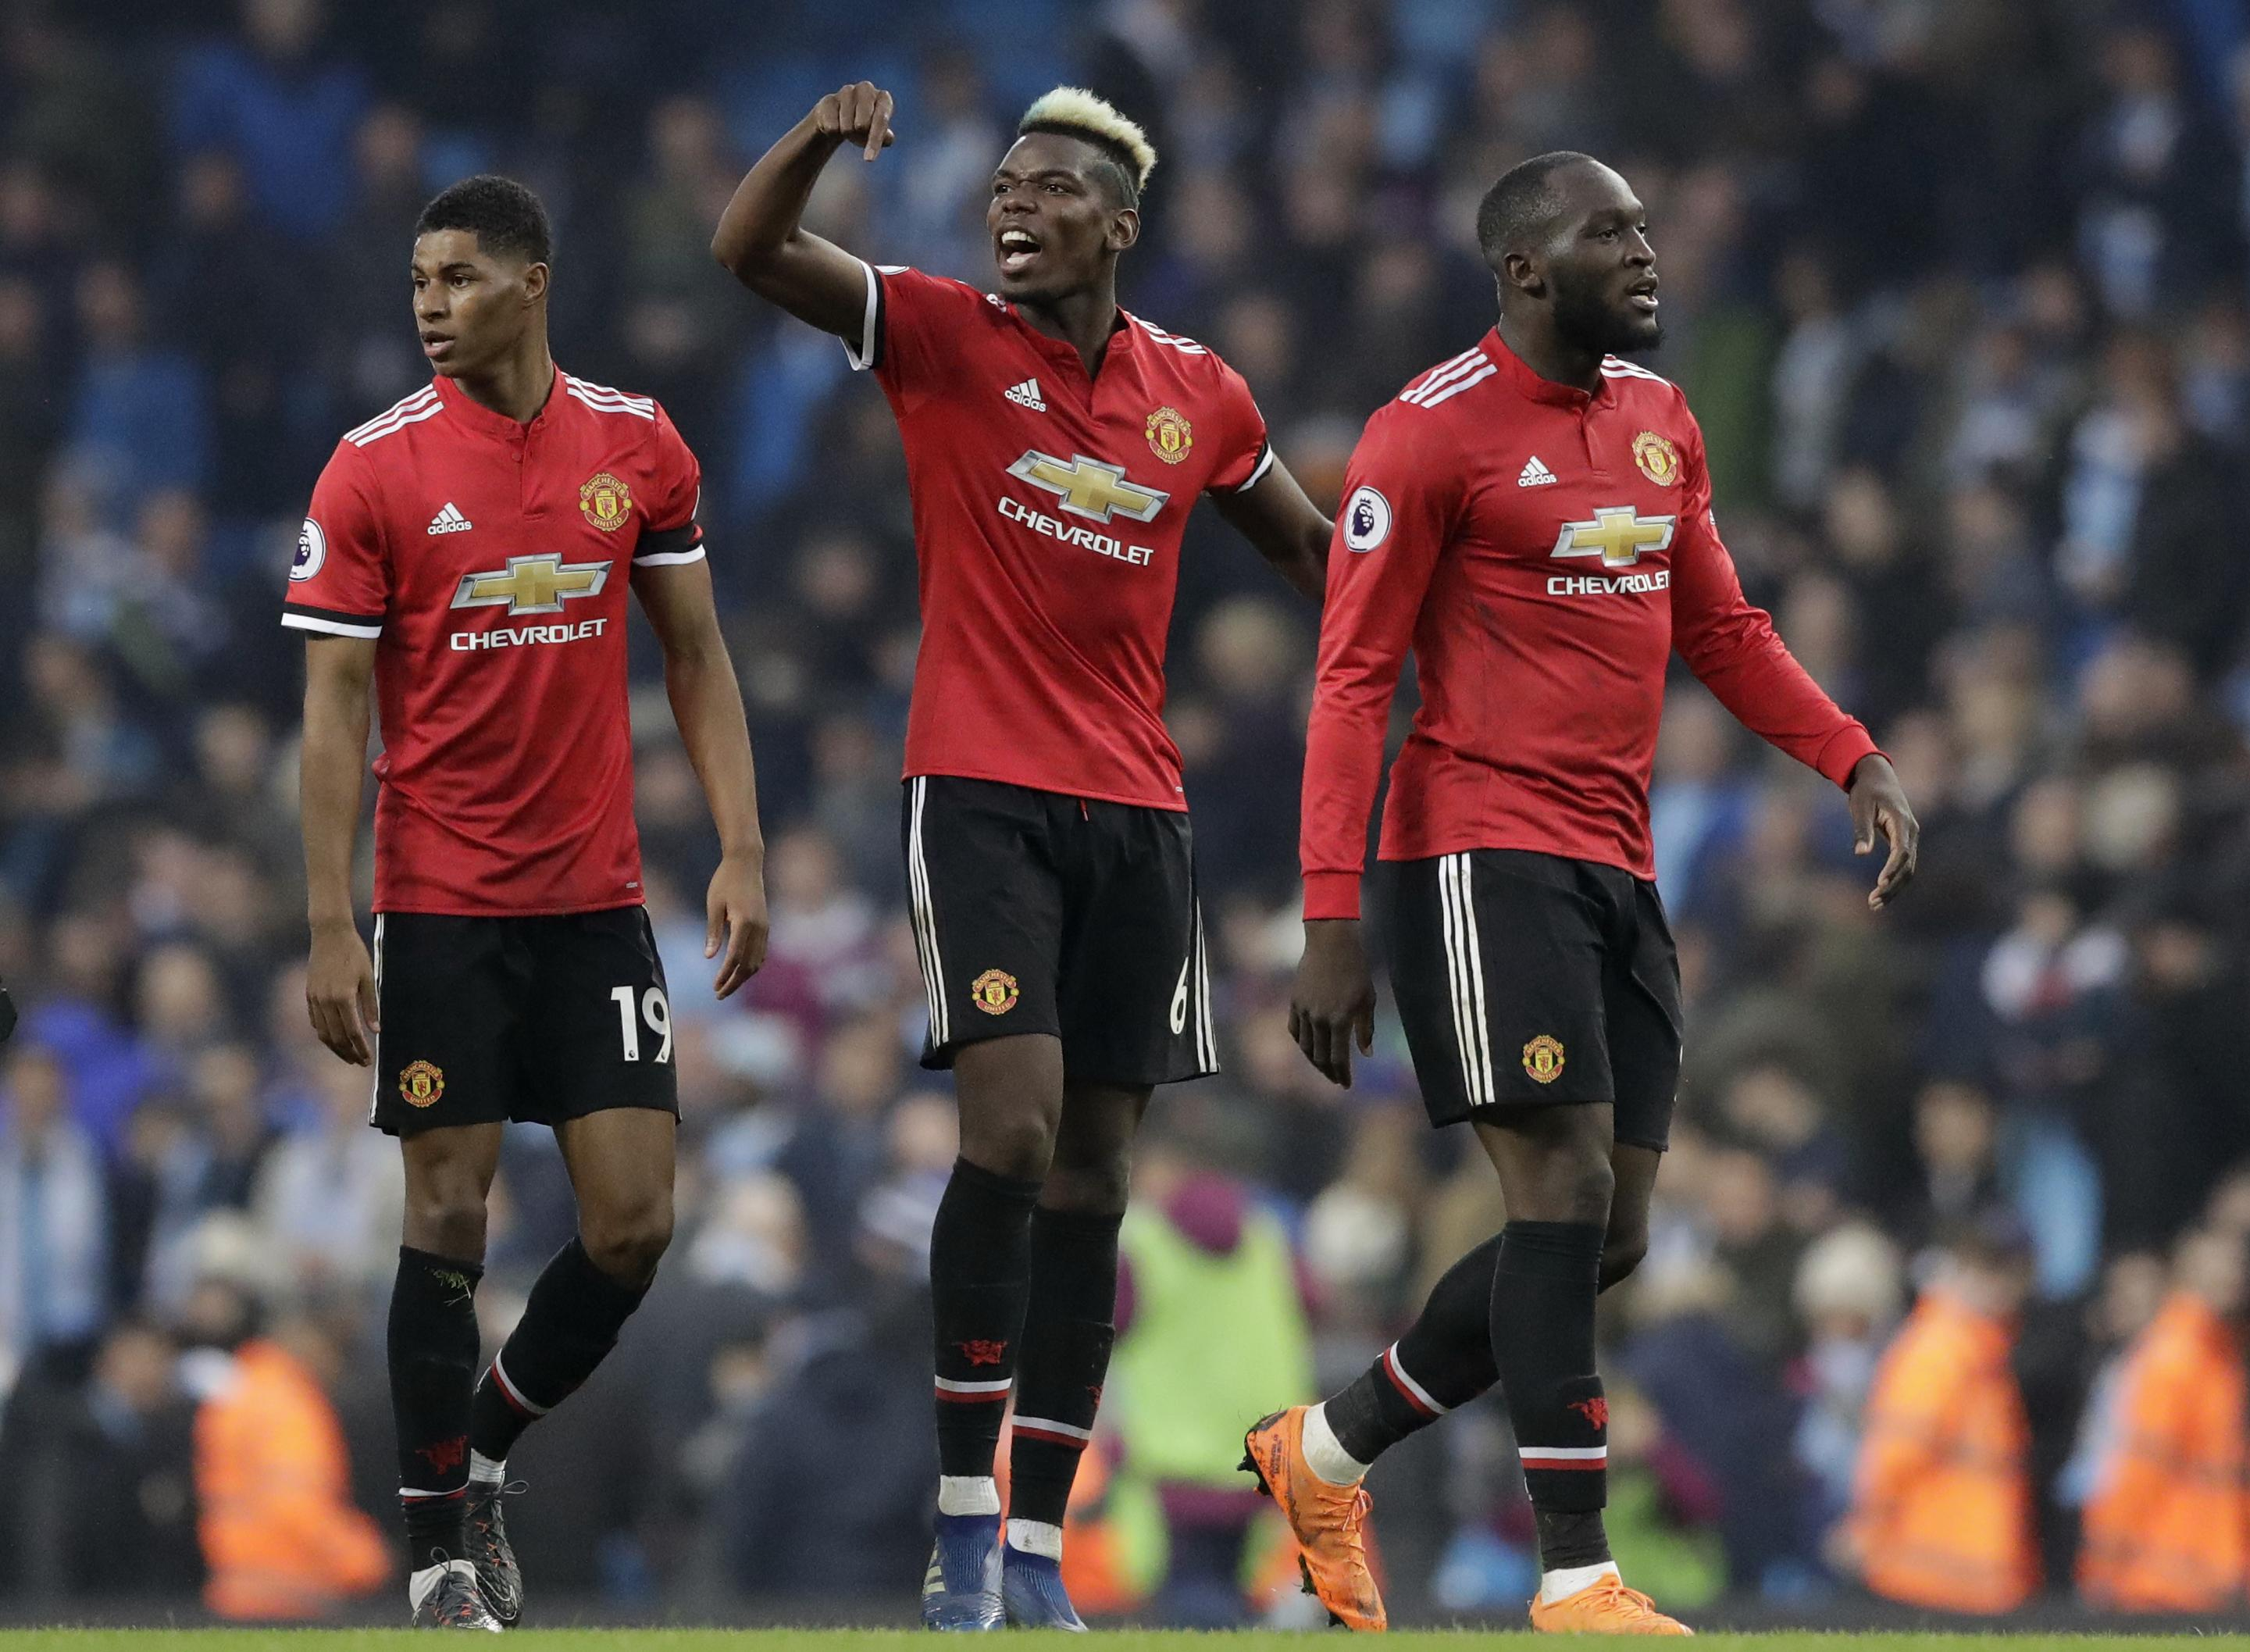 United have been trying to assemble a superstar XI and Rashford may not fit their mould